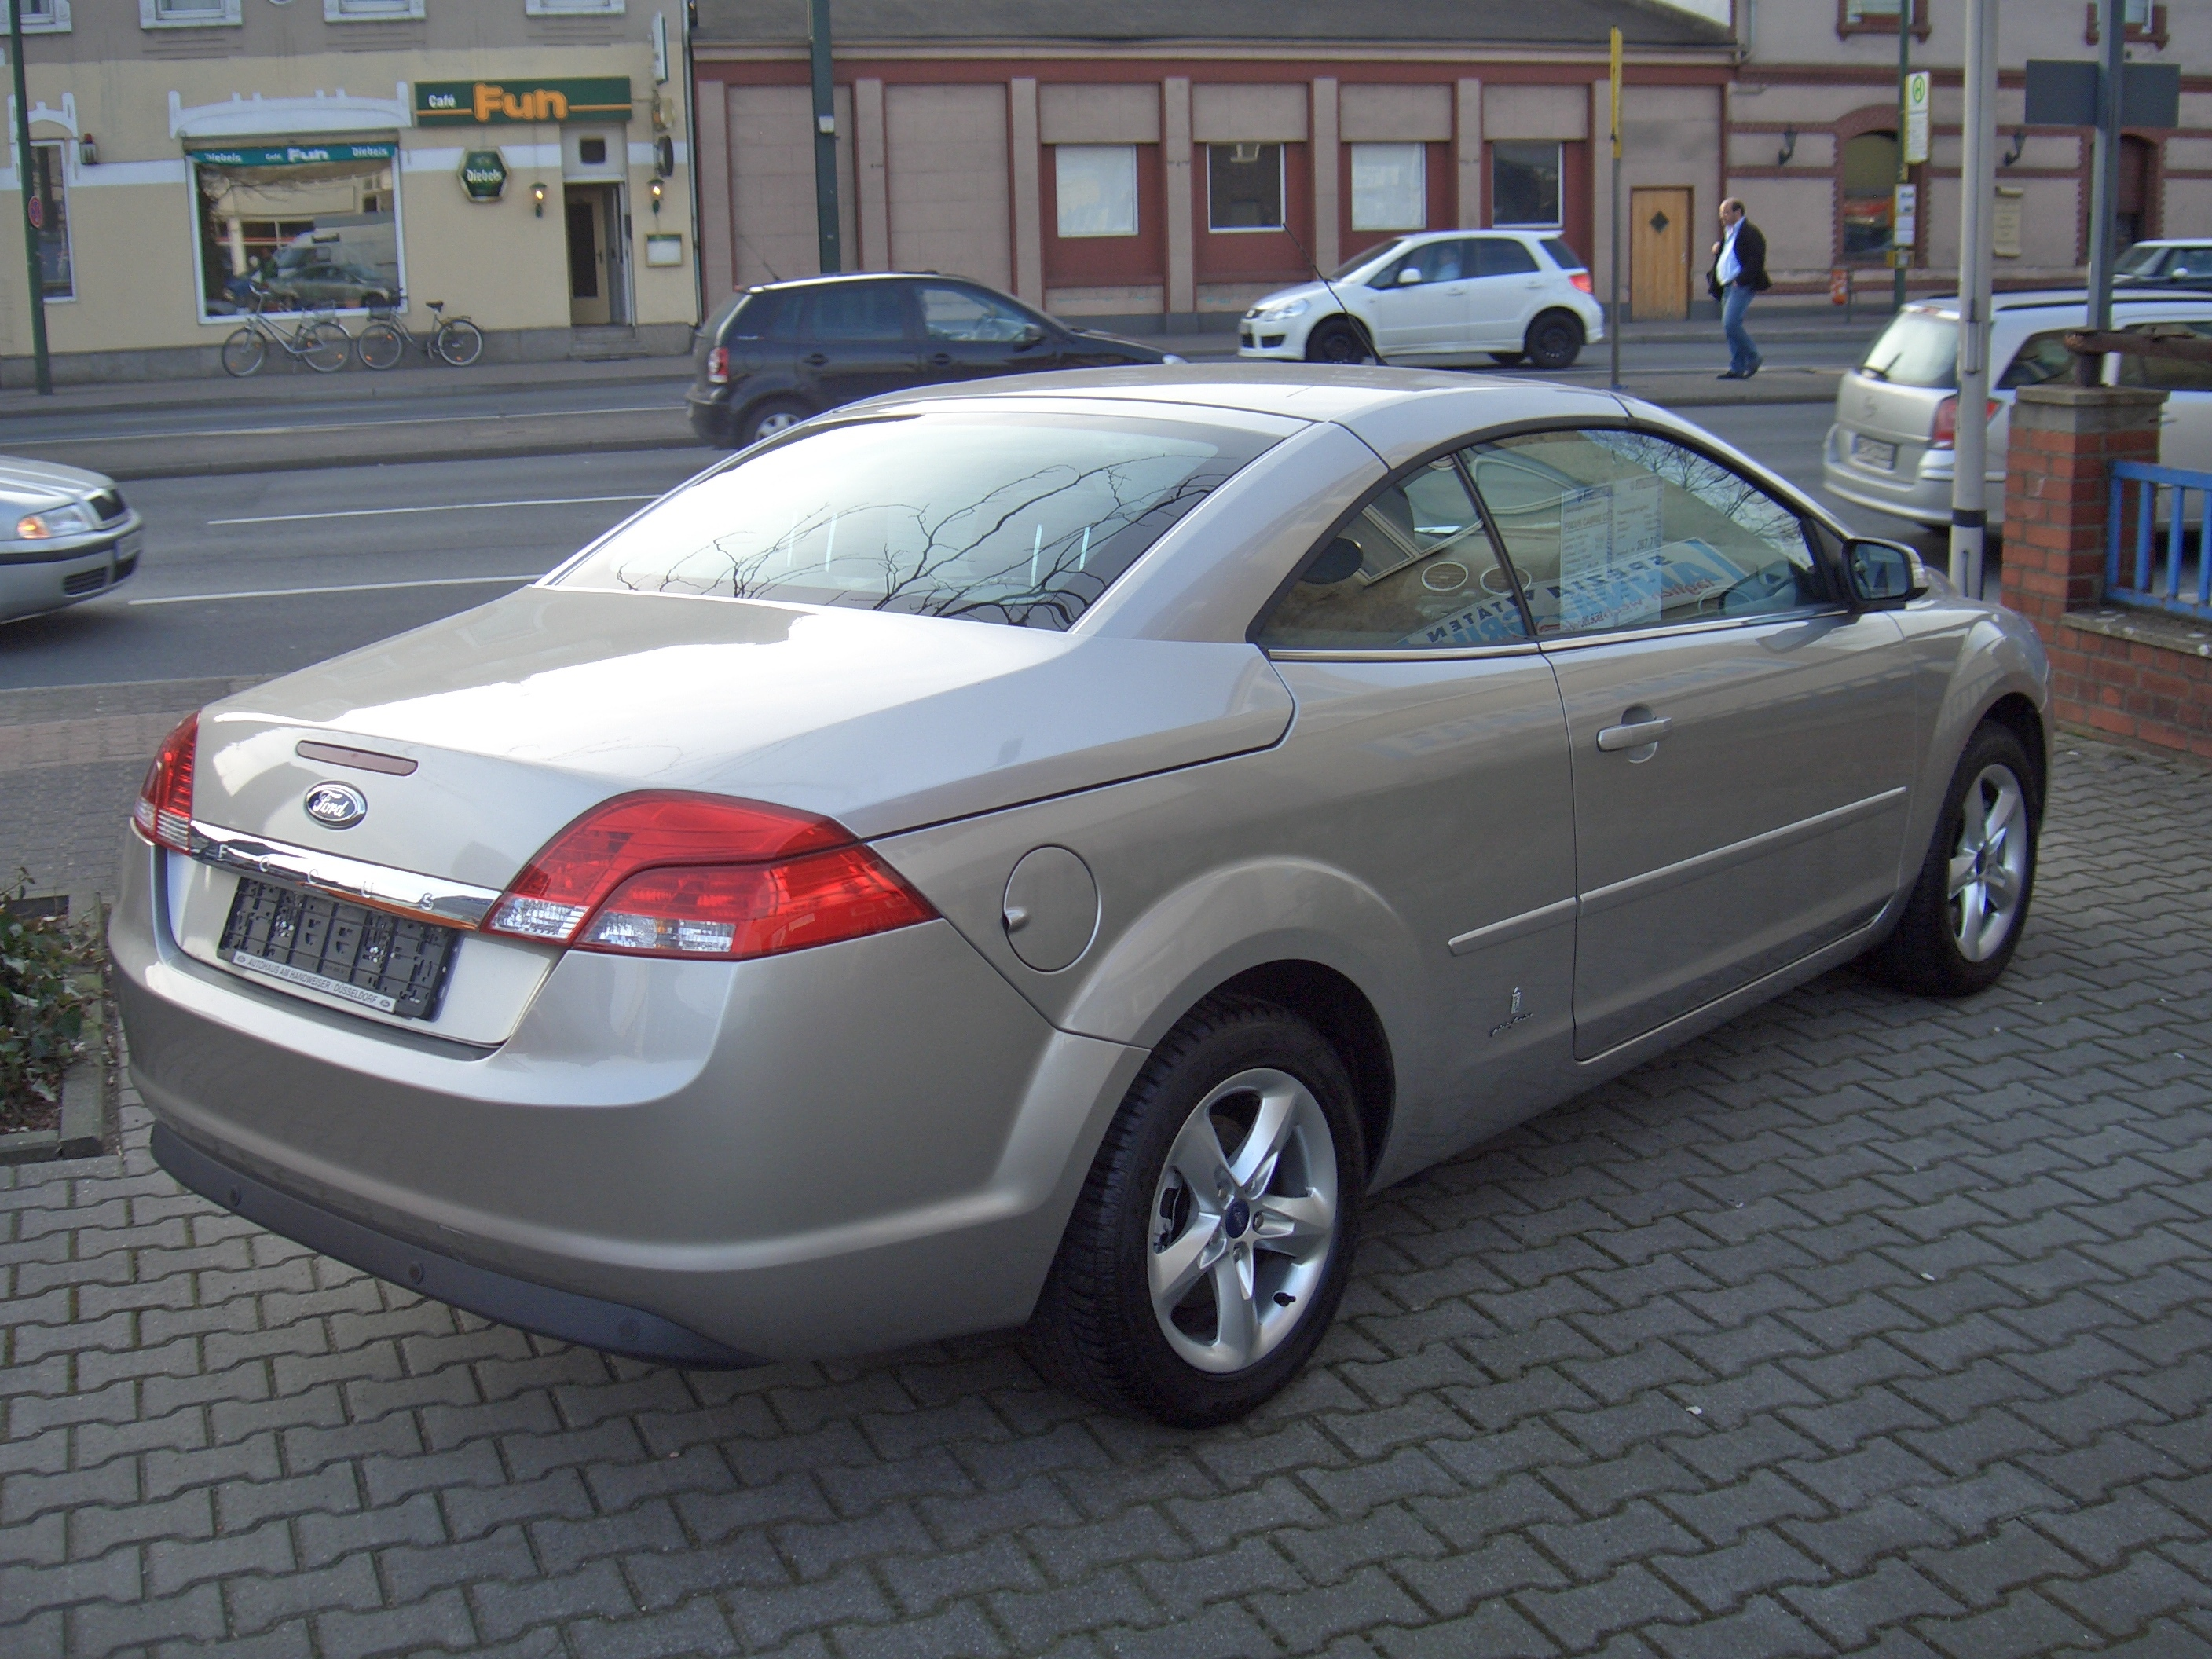 Ford Focus (North America) II 2007 - 2010 Coupe #4